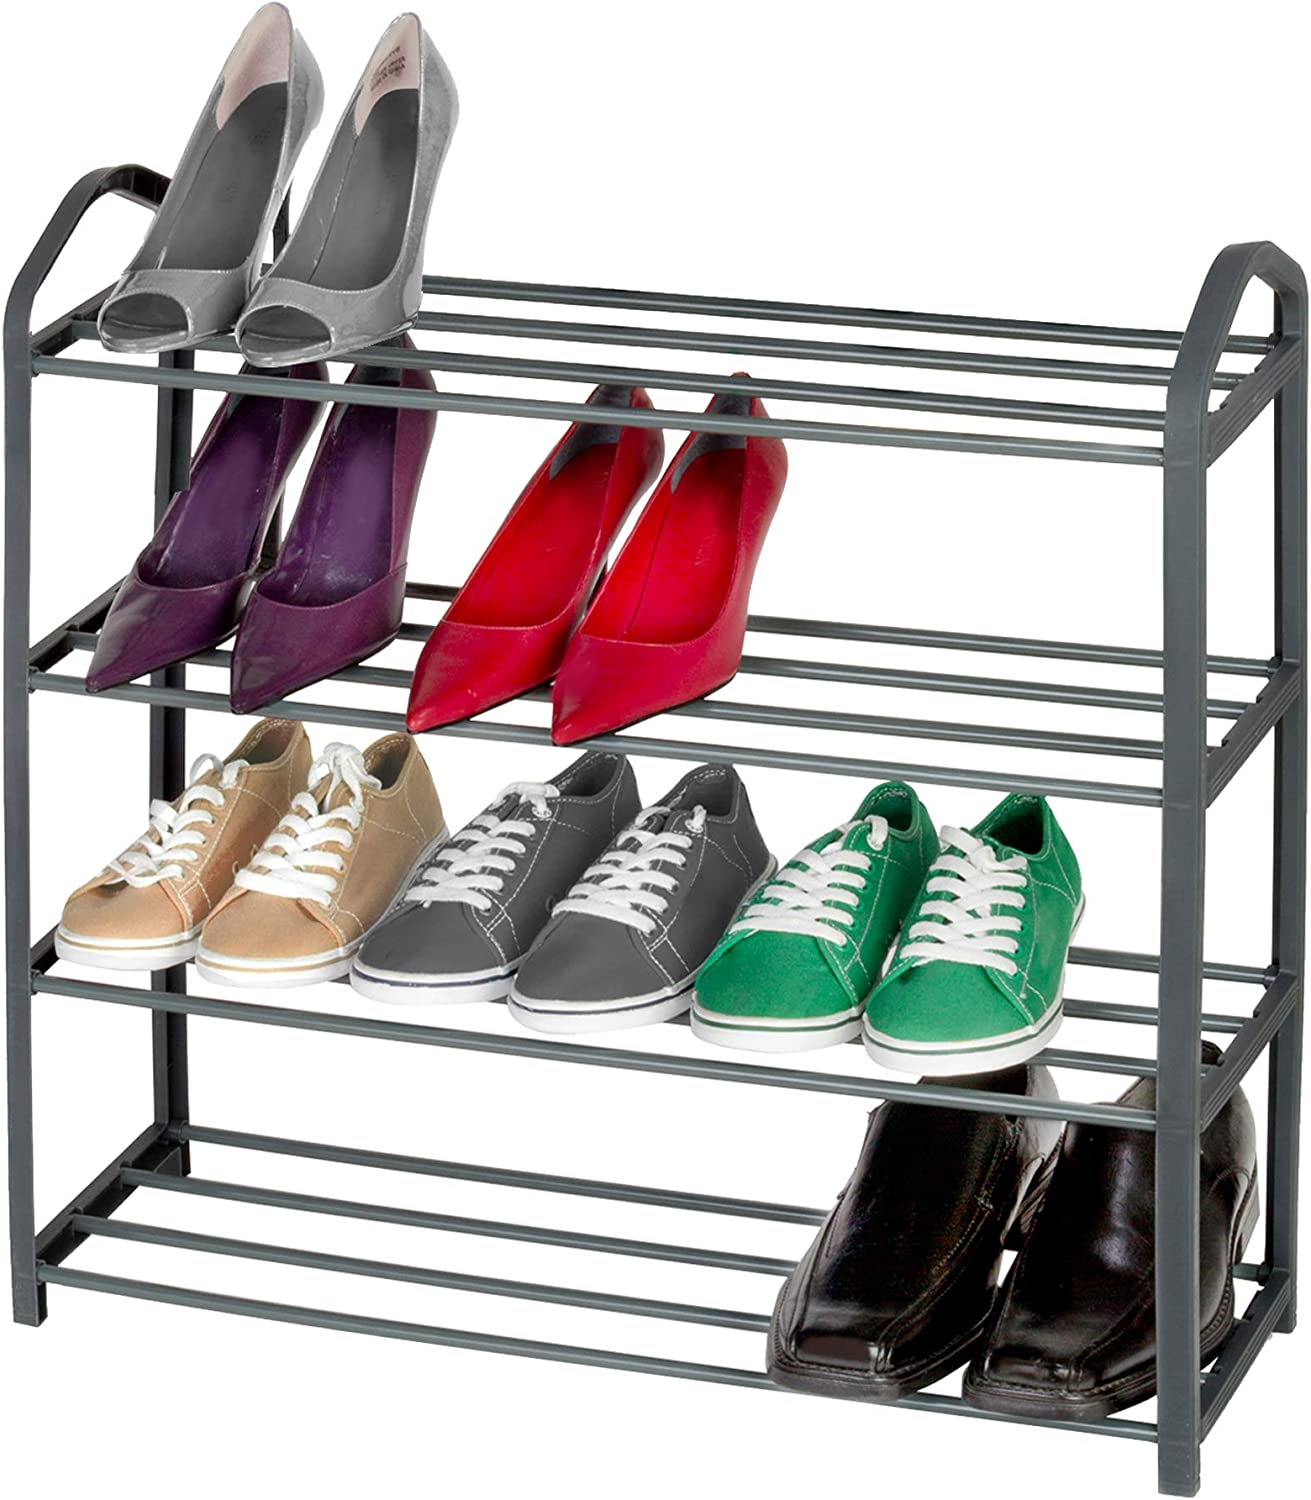 Smart Design 4-Tier Steel Shoe Rack - Holds 12 Pairs of Shoes - Easy Assembly - for Entryway, Closet, Garage - Home Organization (24 x 24 Inch) [Light Gray]